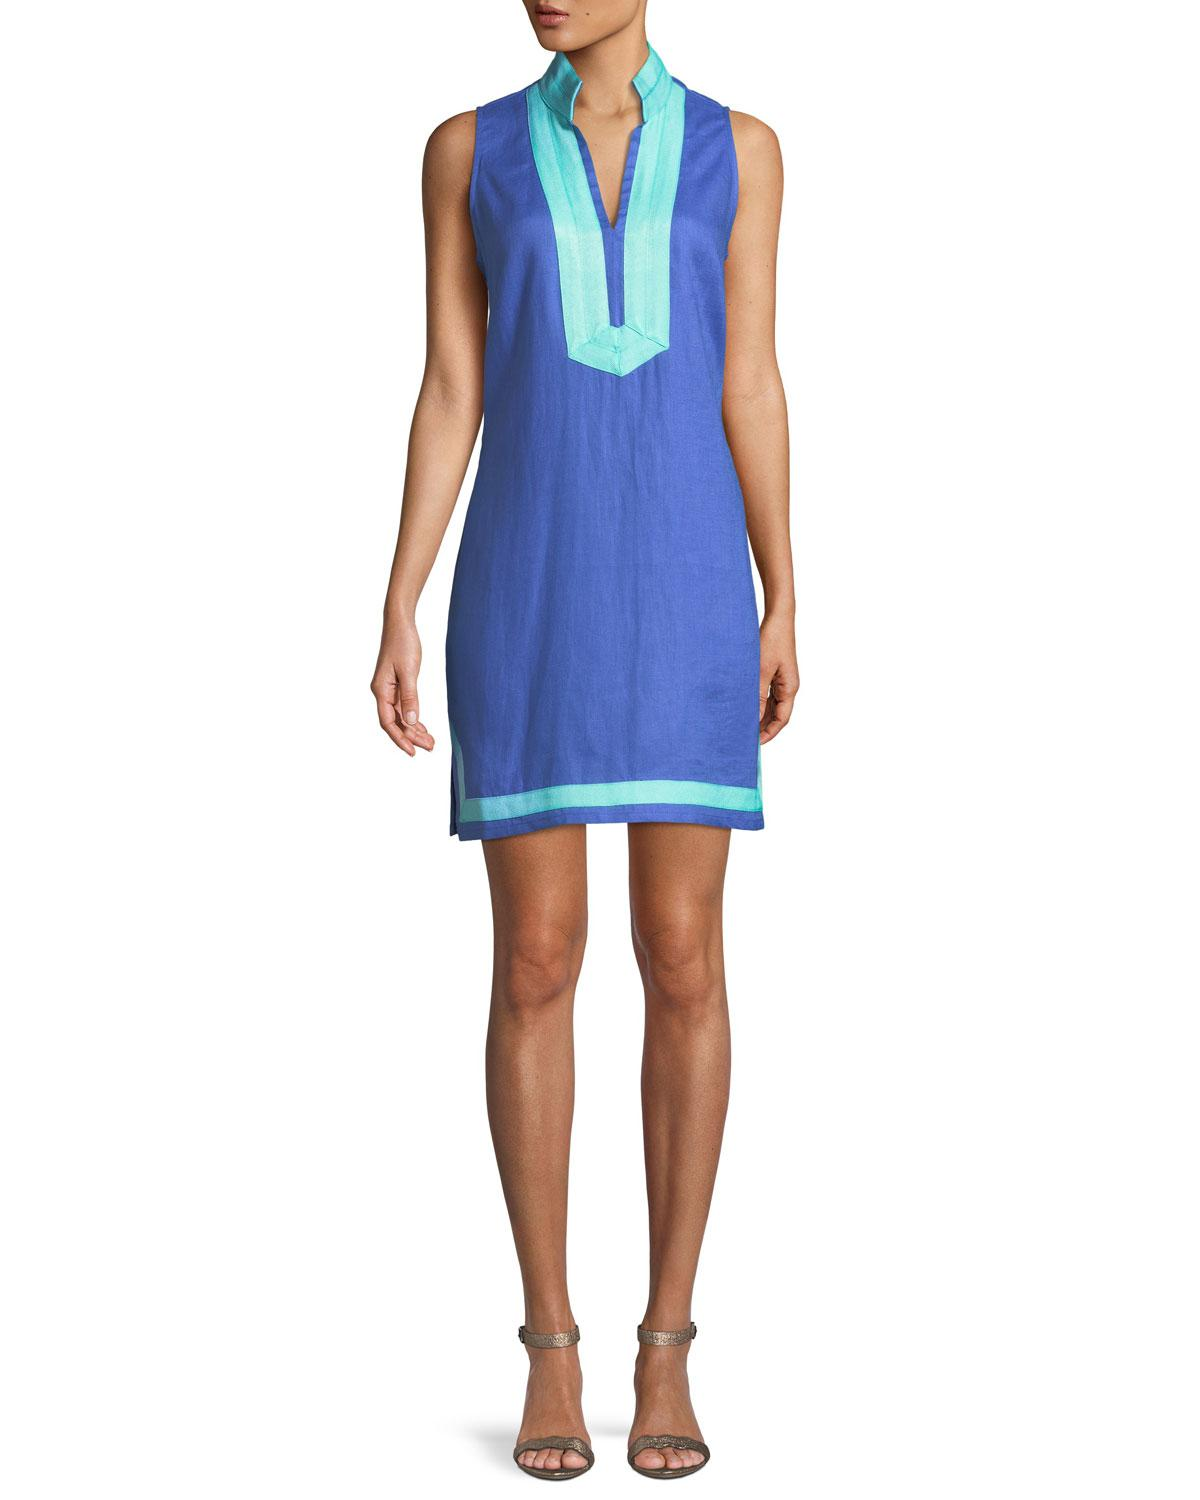 b2b1a31cc4 Lyst - Sail To Sable Sleeveless High-neck Two-tone Linen Tunic Dress ...